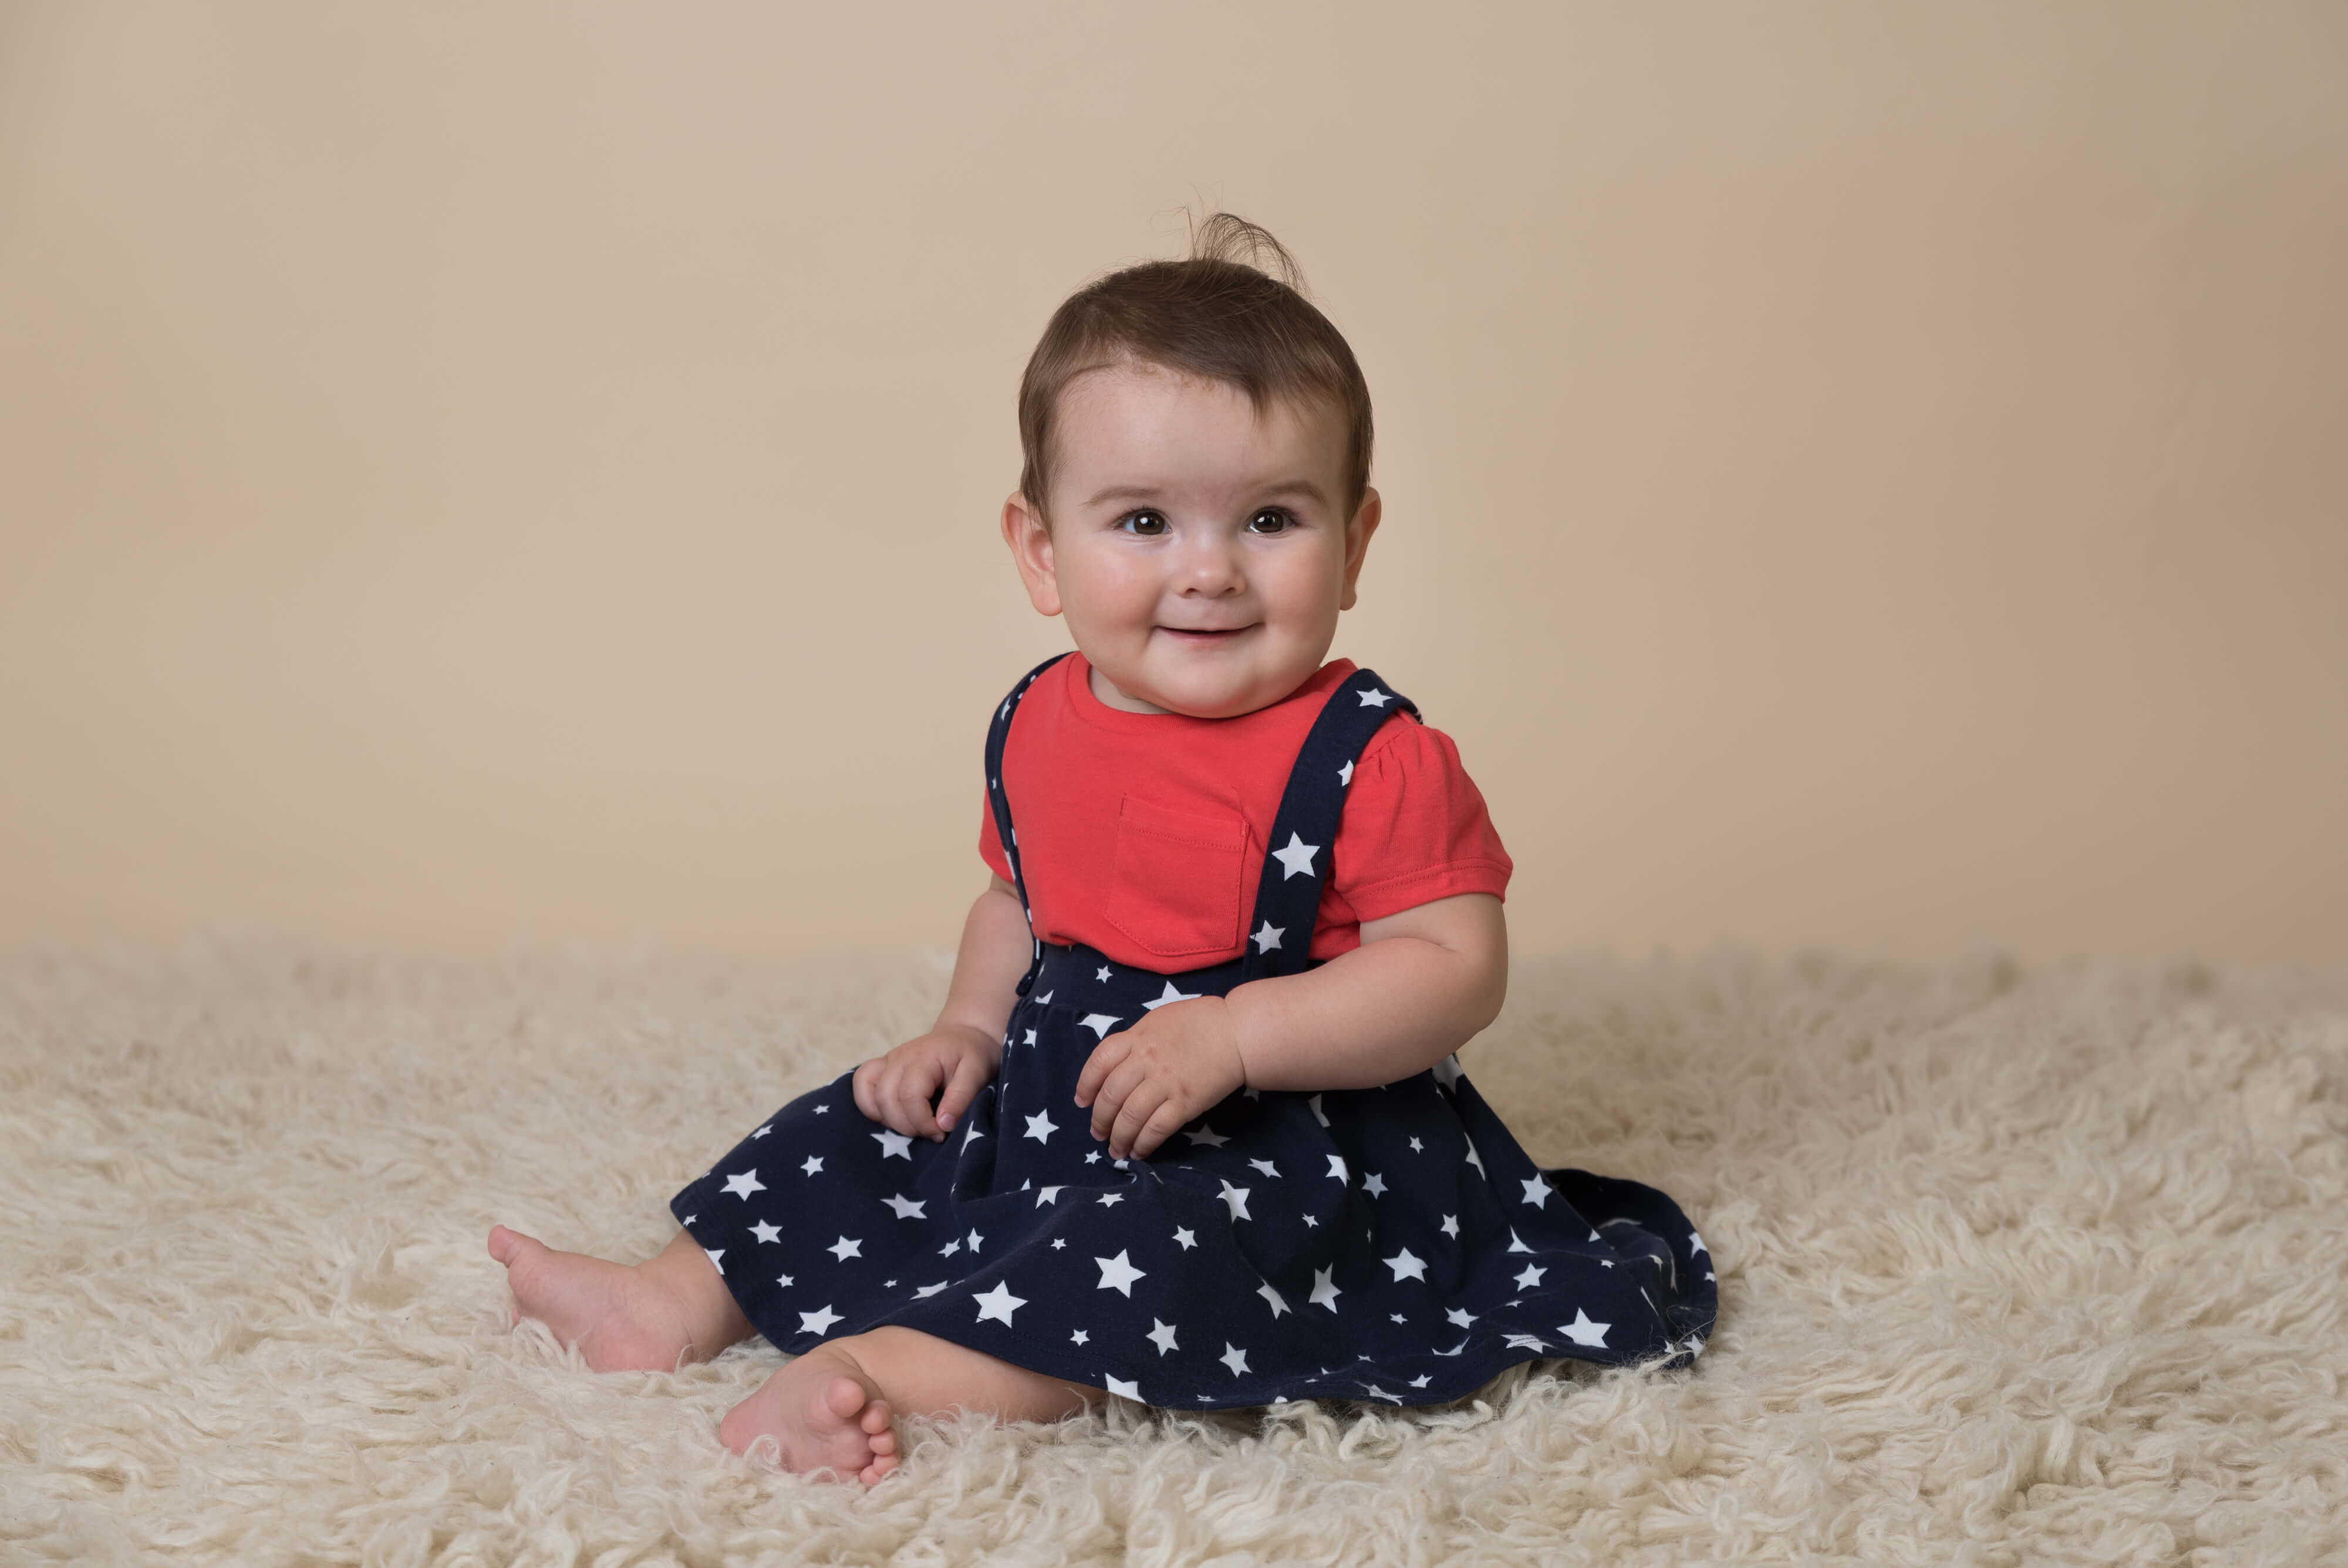 Slice of Life Little Sitters Session Gallery - Baby girl wearing a star pattern dress